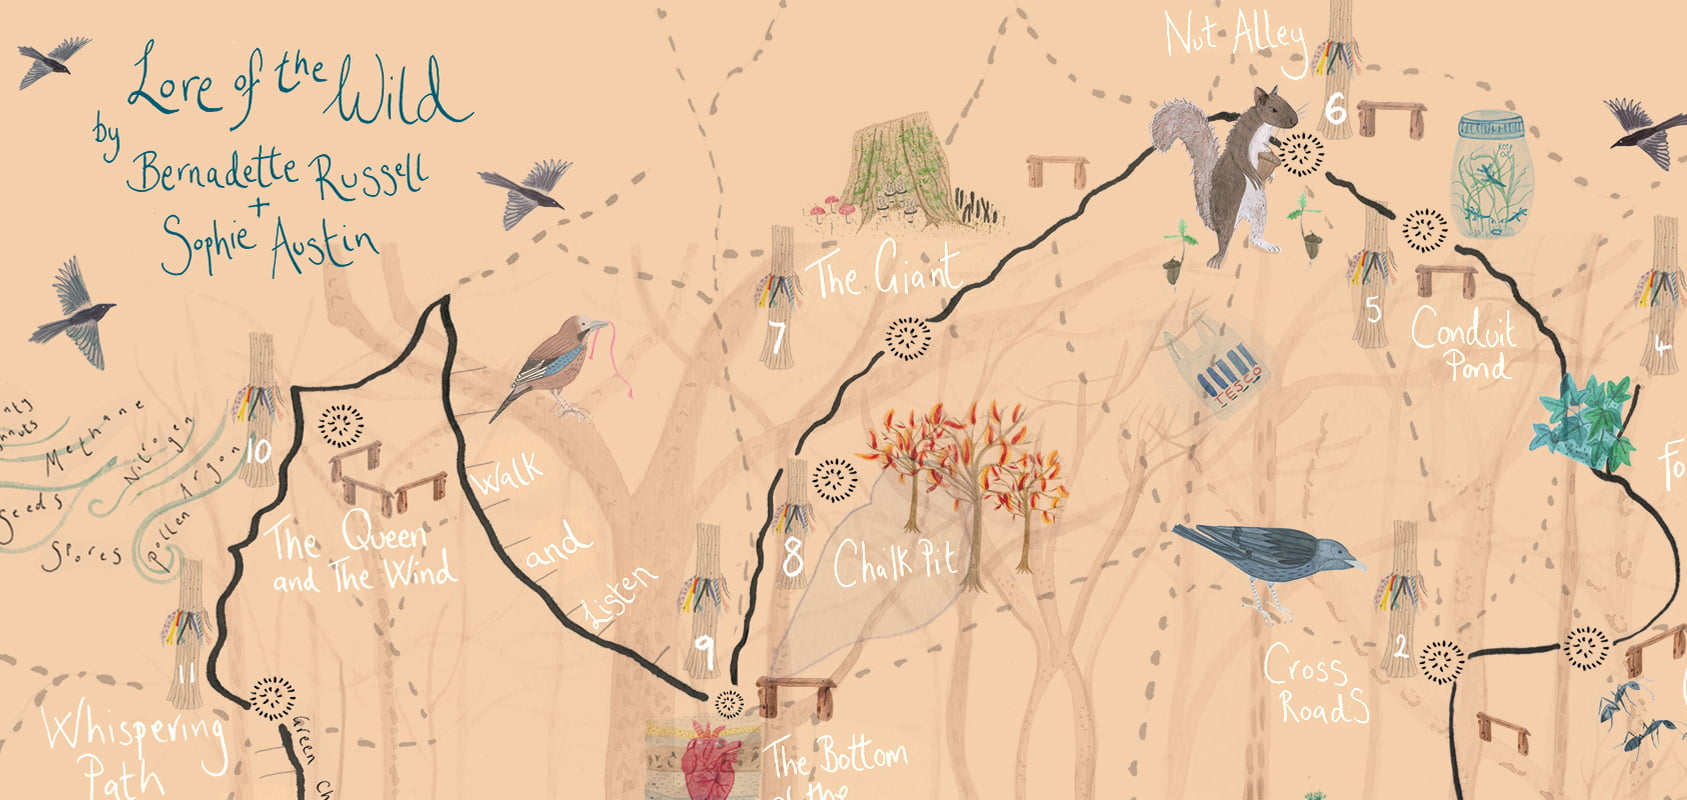 A hand drawn map with the locations of squirrels and crows carefully marked.